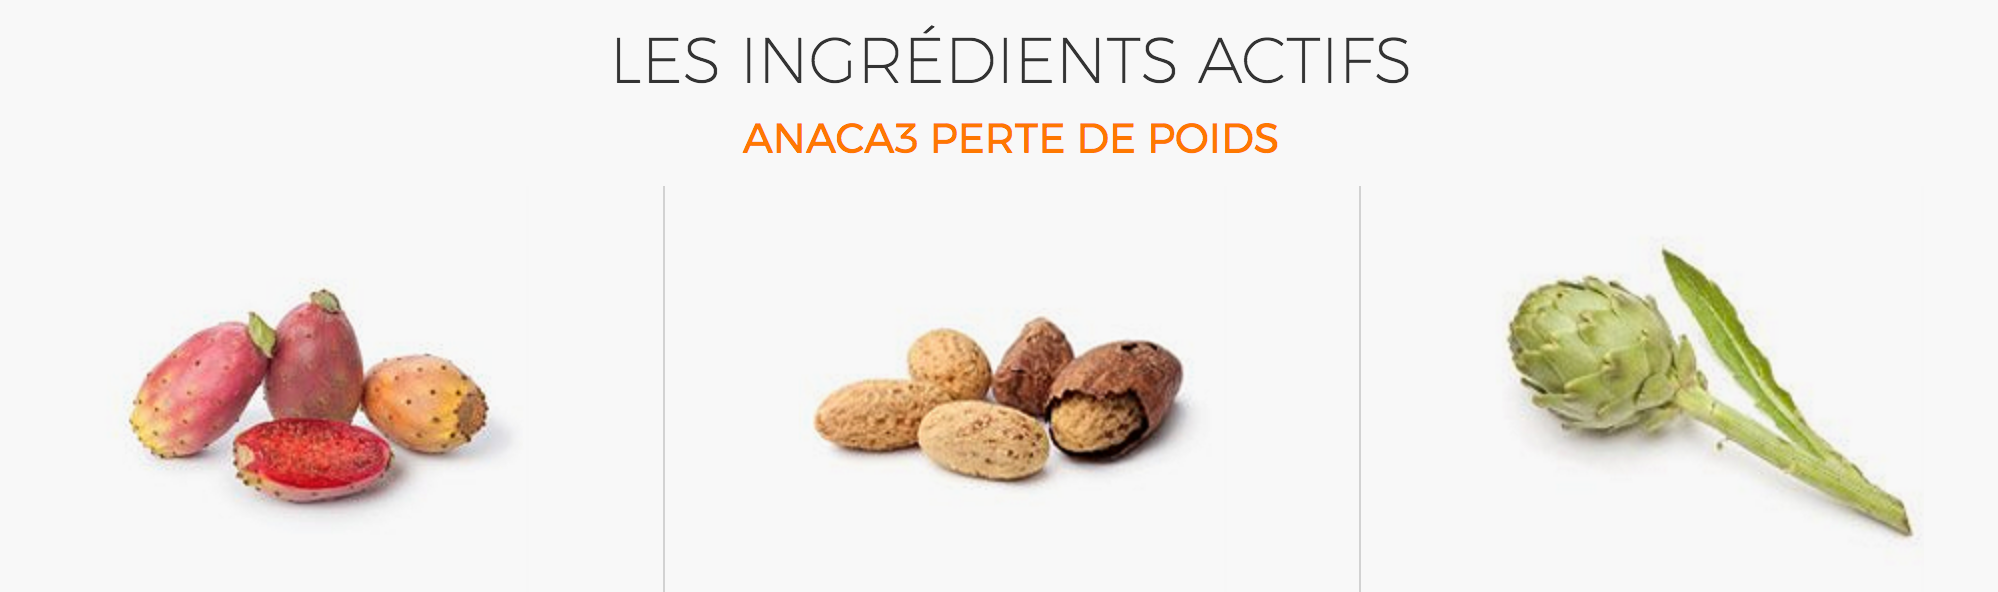 ingredient anaca3